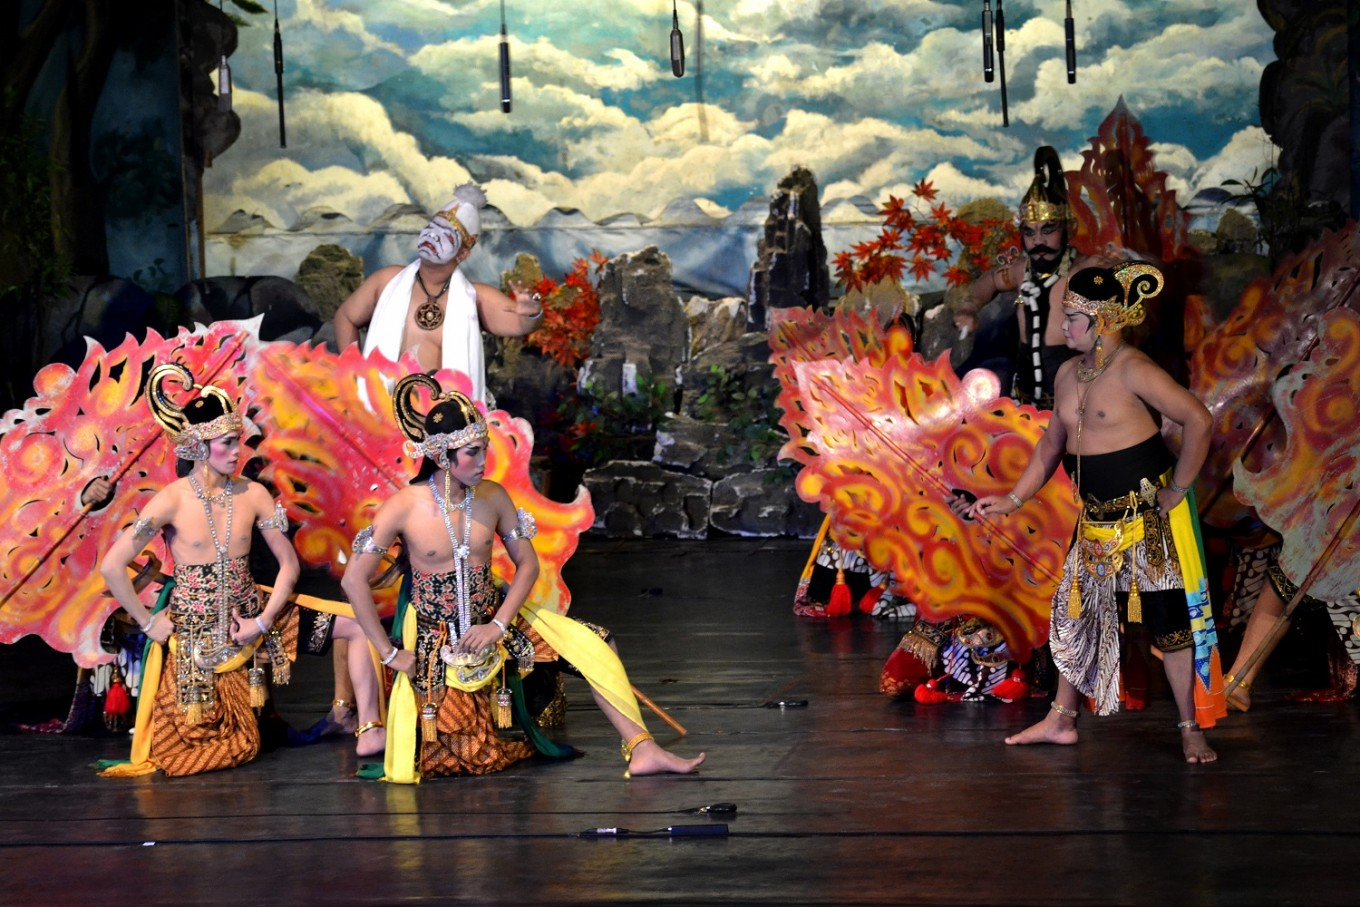 The first show involved young performers from Wayang Orang Sriwedari.